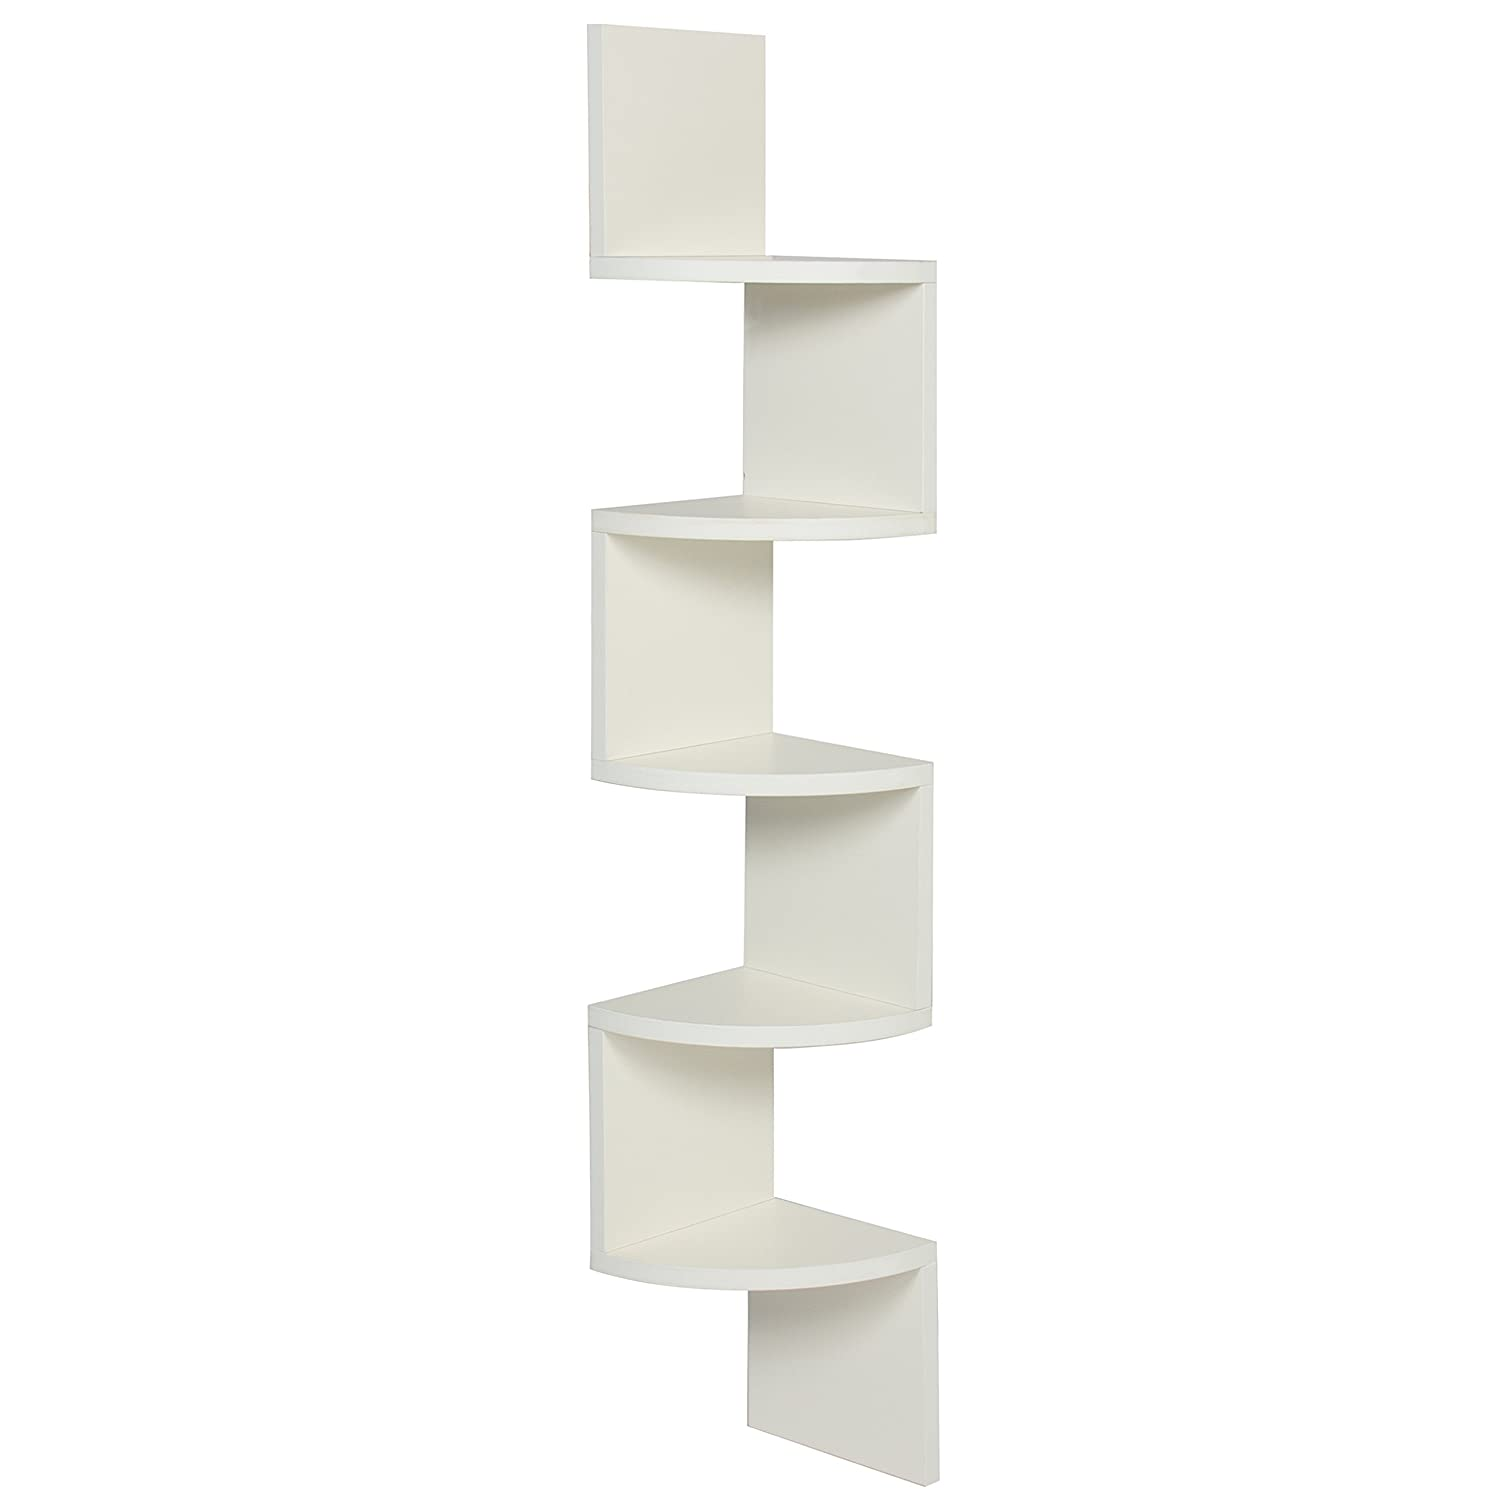 Amazon best choice products large corner wood zig zag wall amazon best choice products large corner wood zig zag wall shelf white finish home decor furniture home kitchen amipublicfo Images